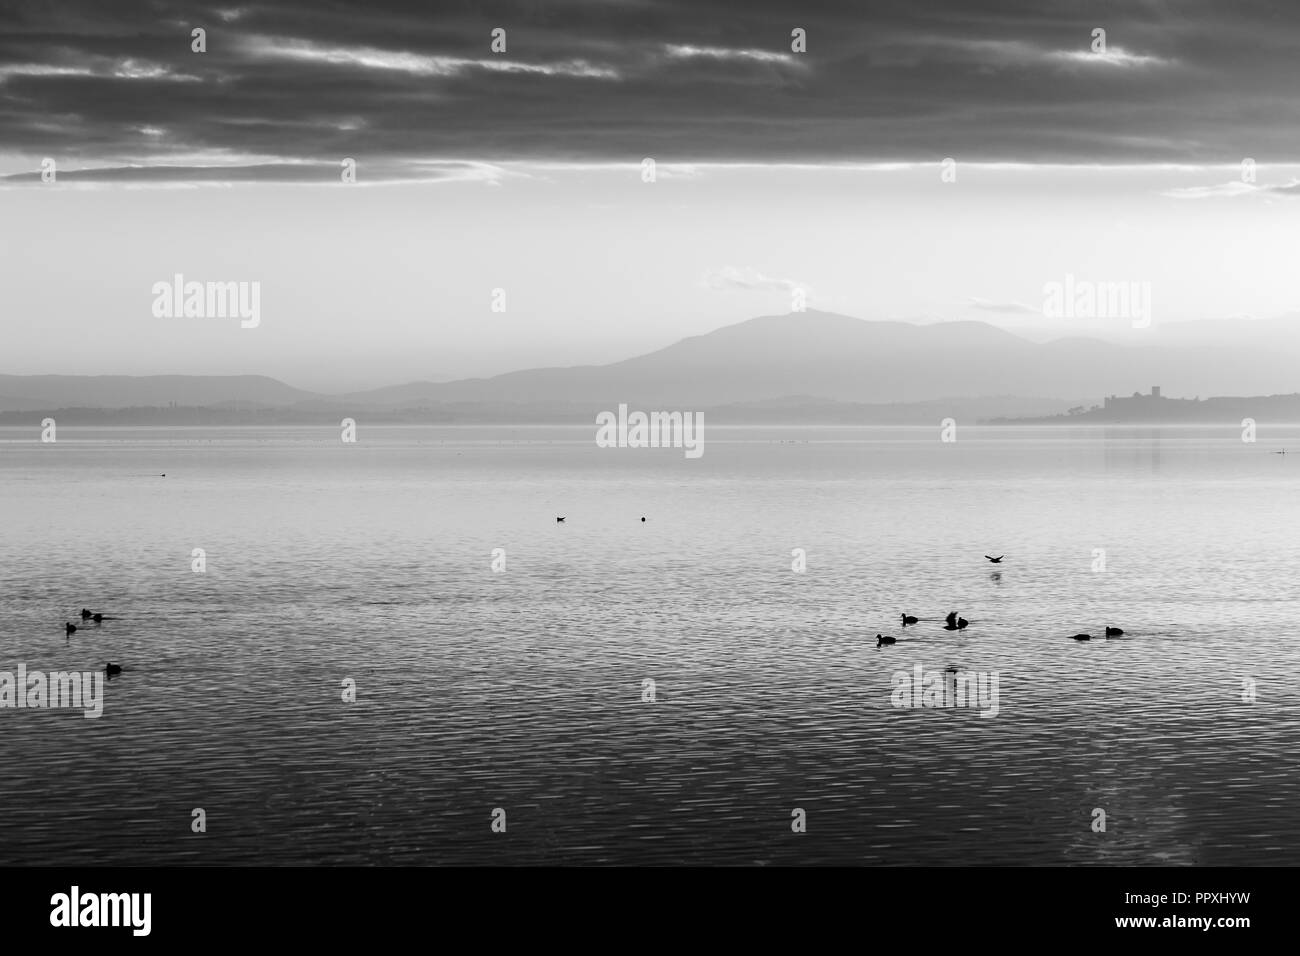 Beautiful view of Trasimeno lake at sunset with birds on water and Castiglione del Lago town in the background Stock Photo